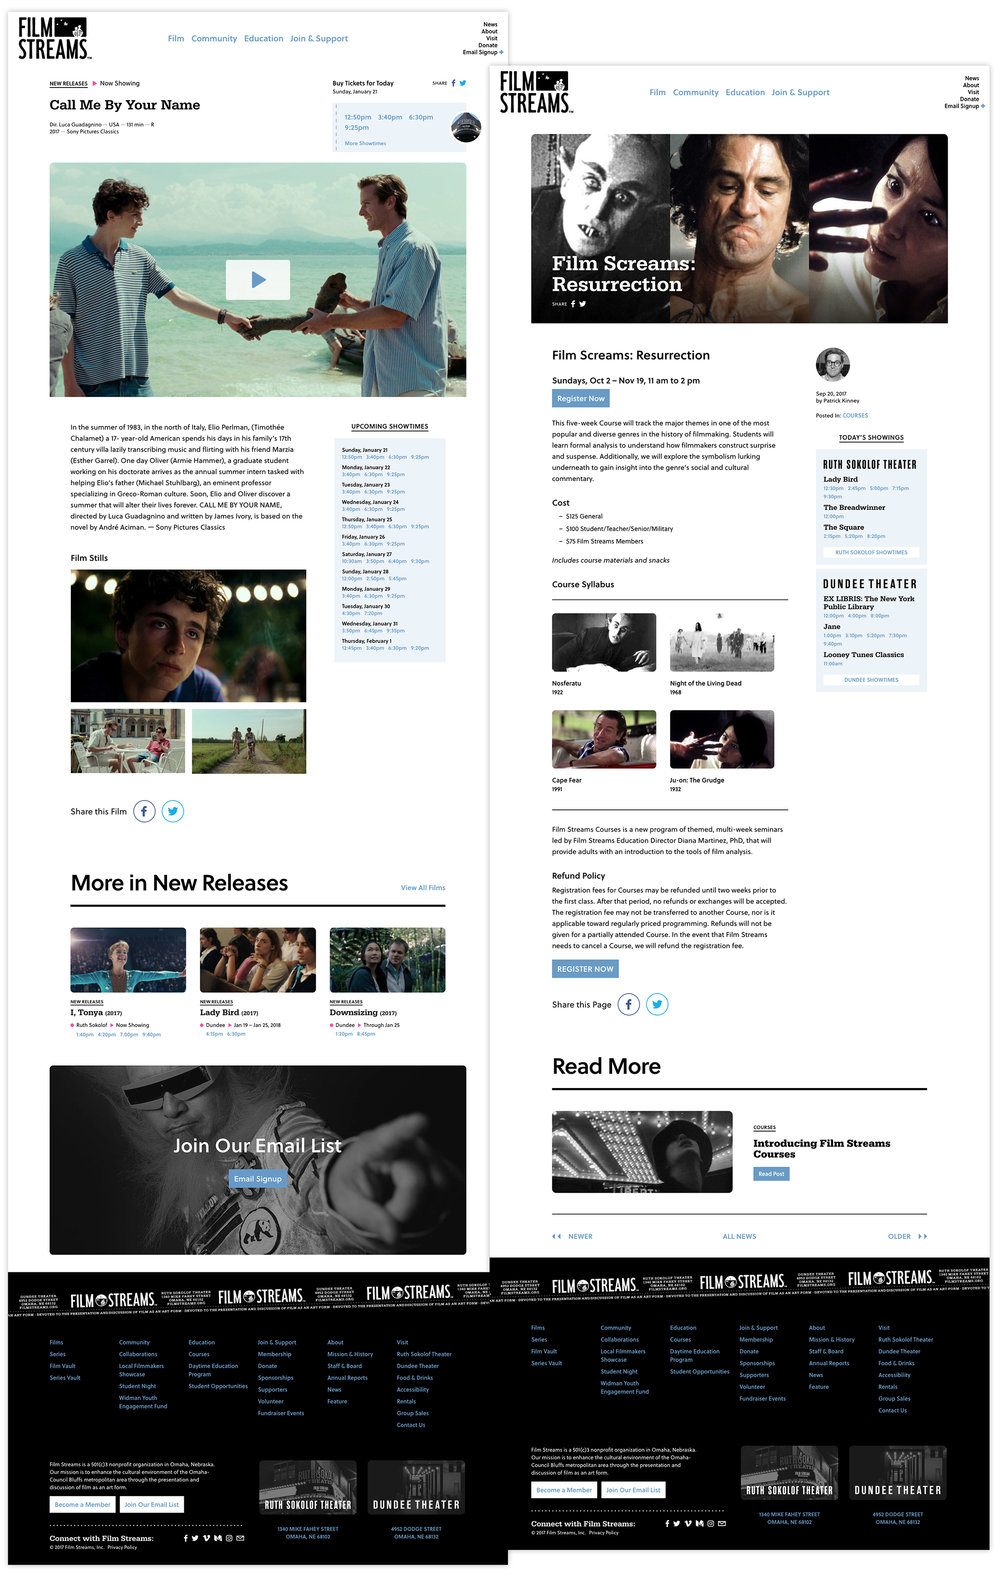 jkdc_filmstreams-pagedesigns.jpg